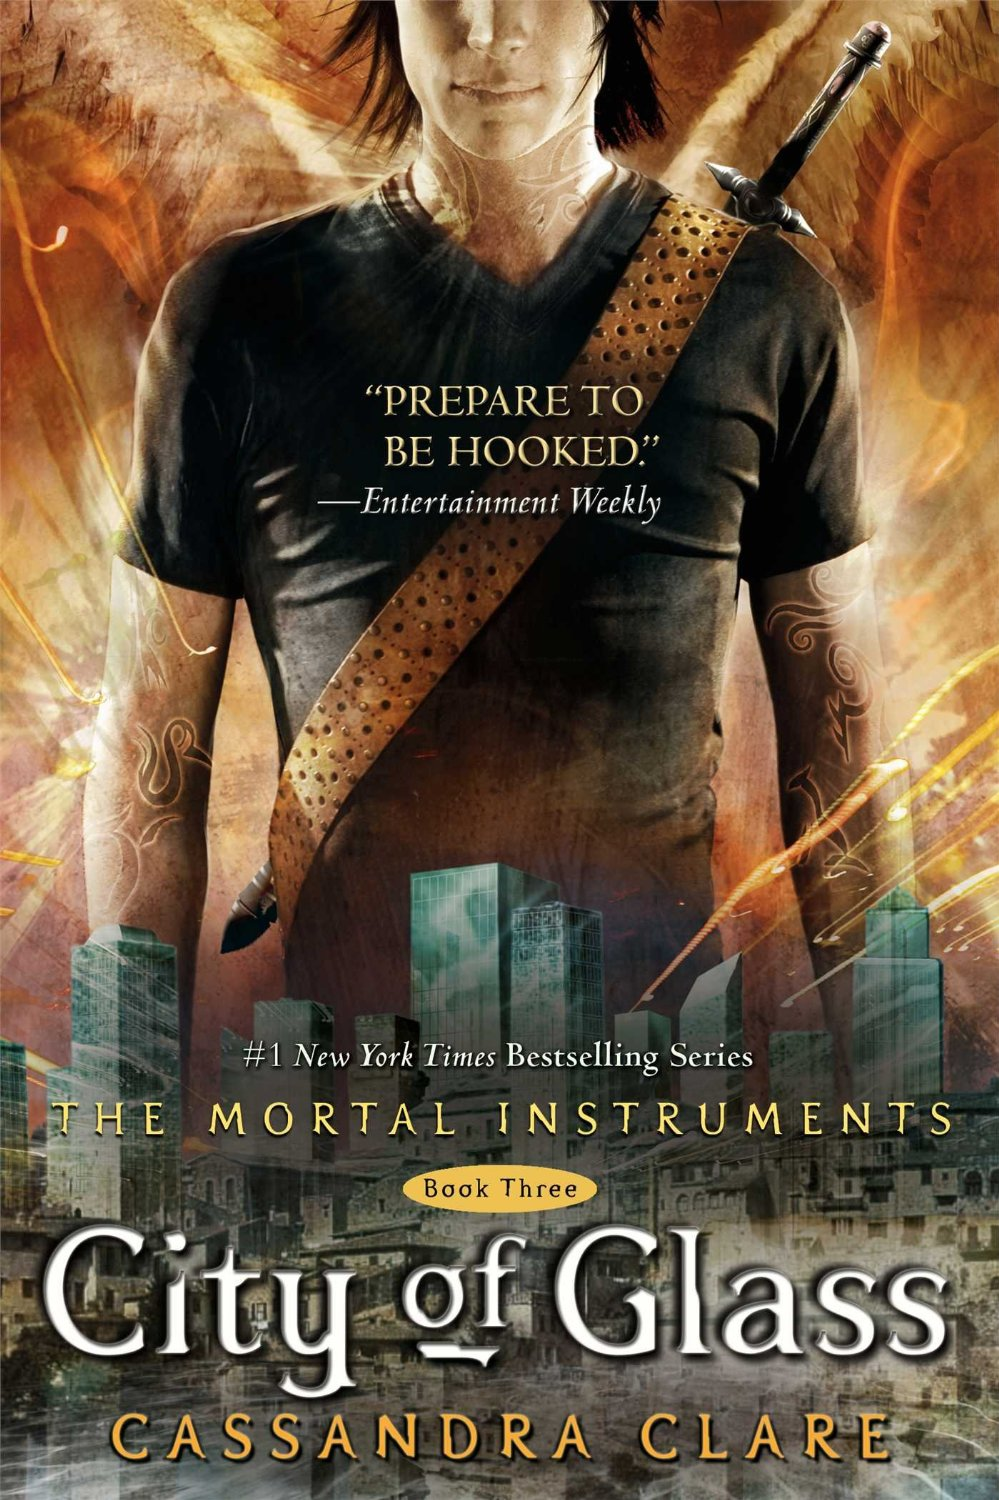 City of Glass by Cassandra Clare!